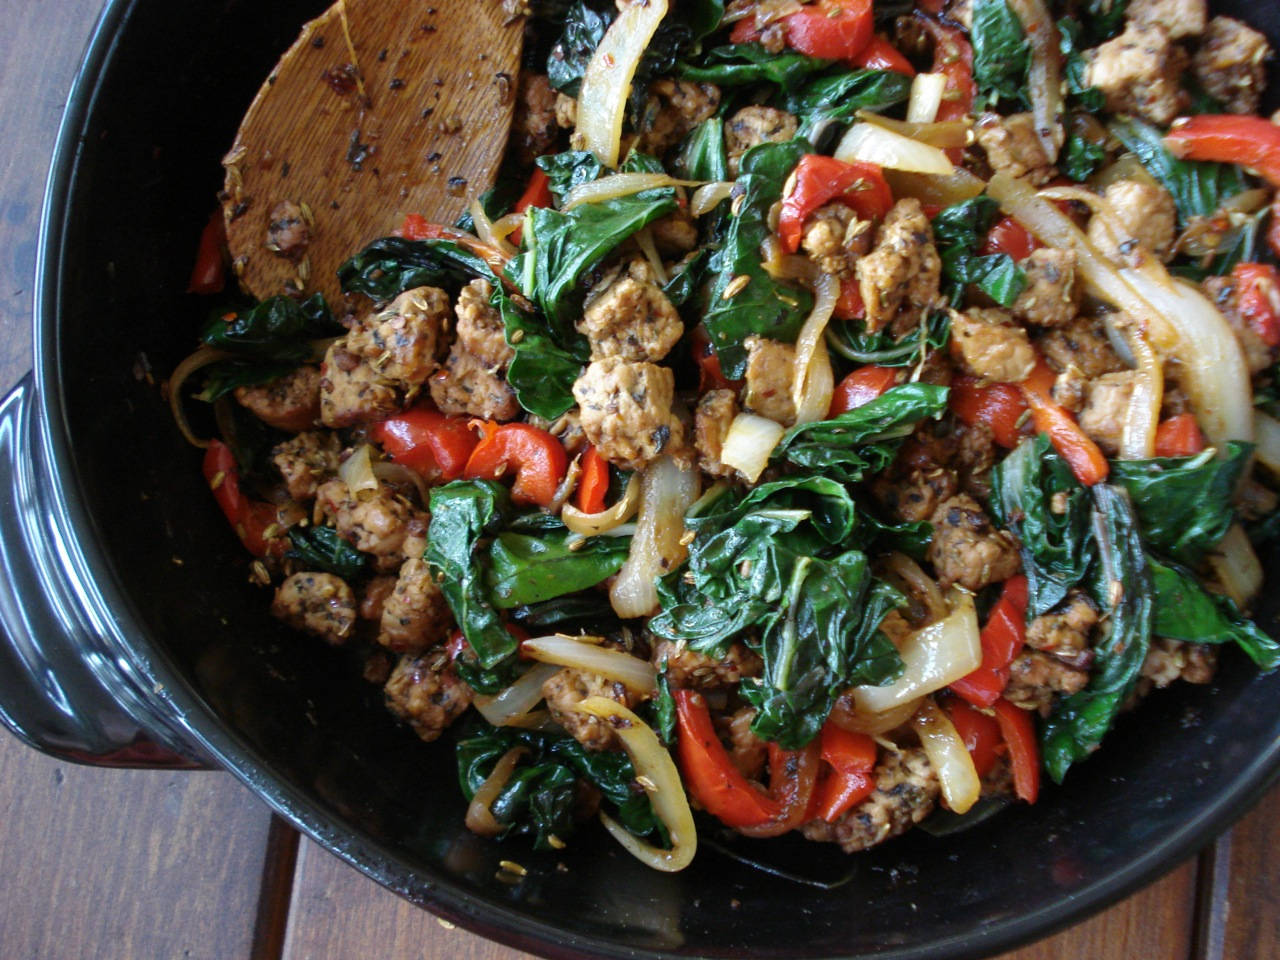 Sausage (Tempeh) & Peppers w/ Greens